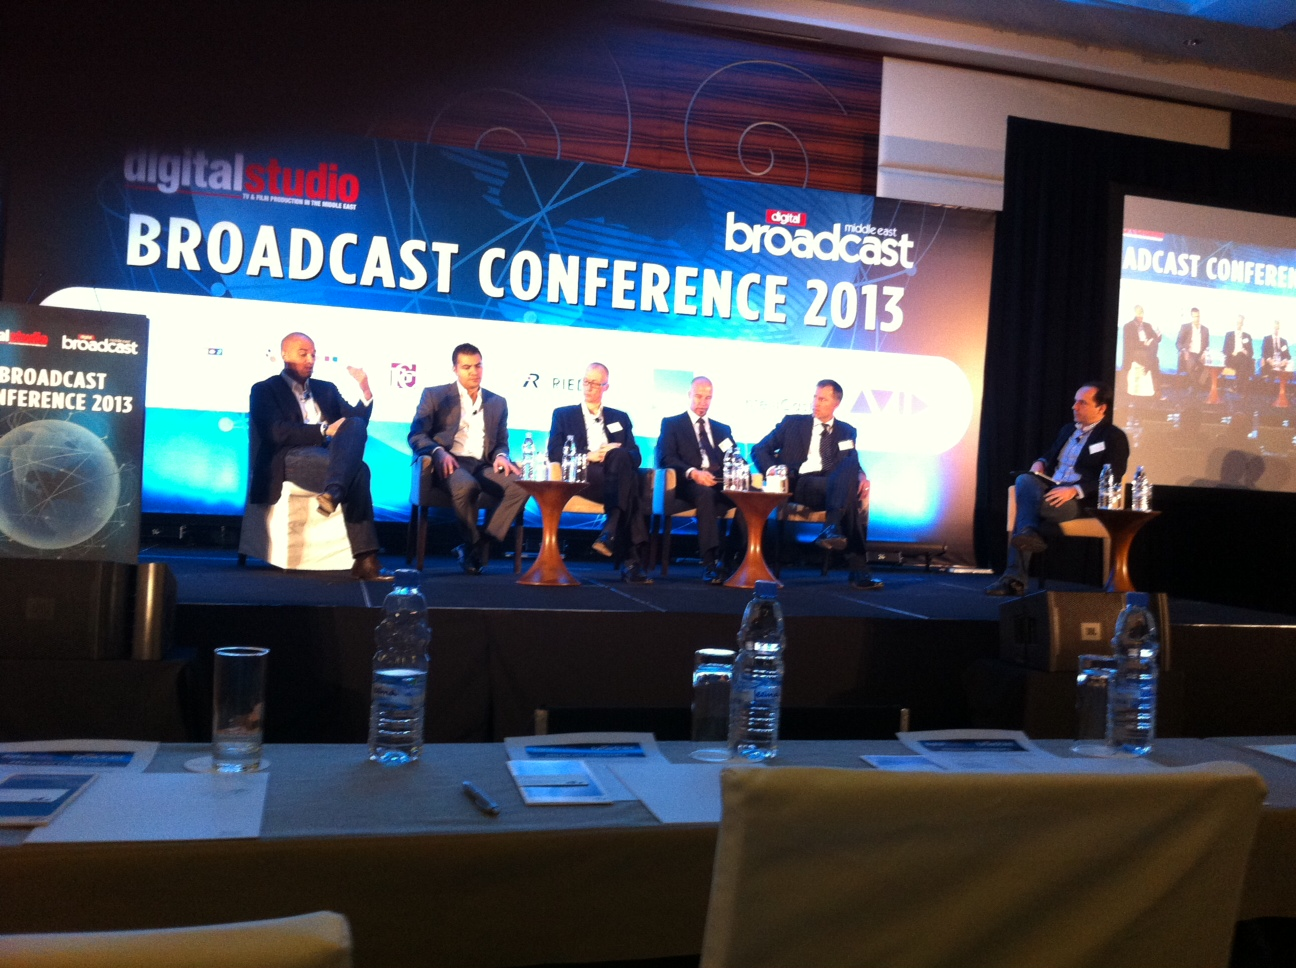 broadcast_conference_2013_itp_clyde